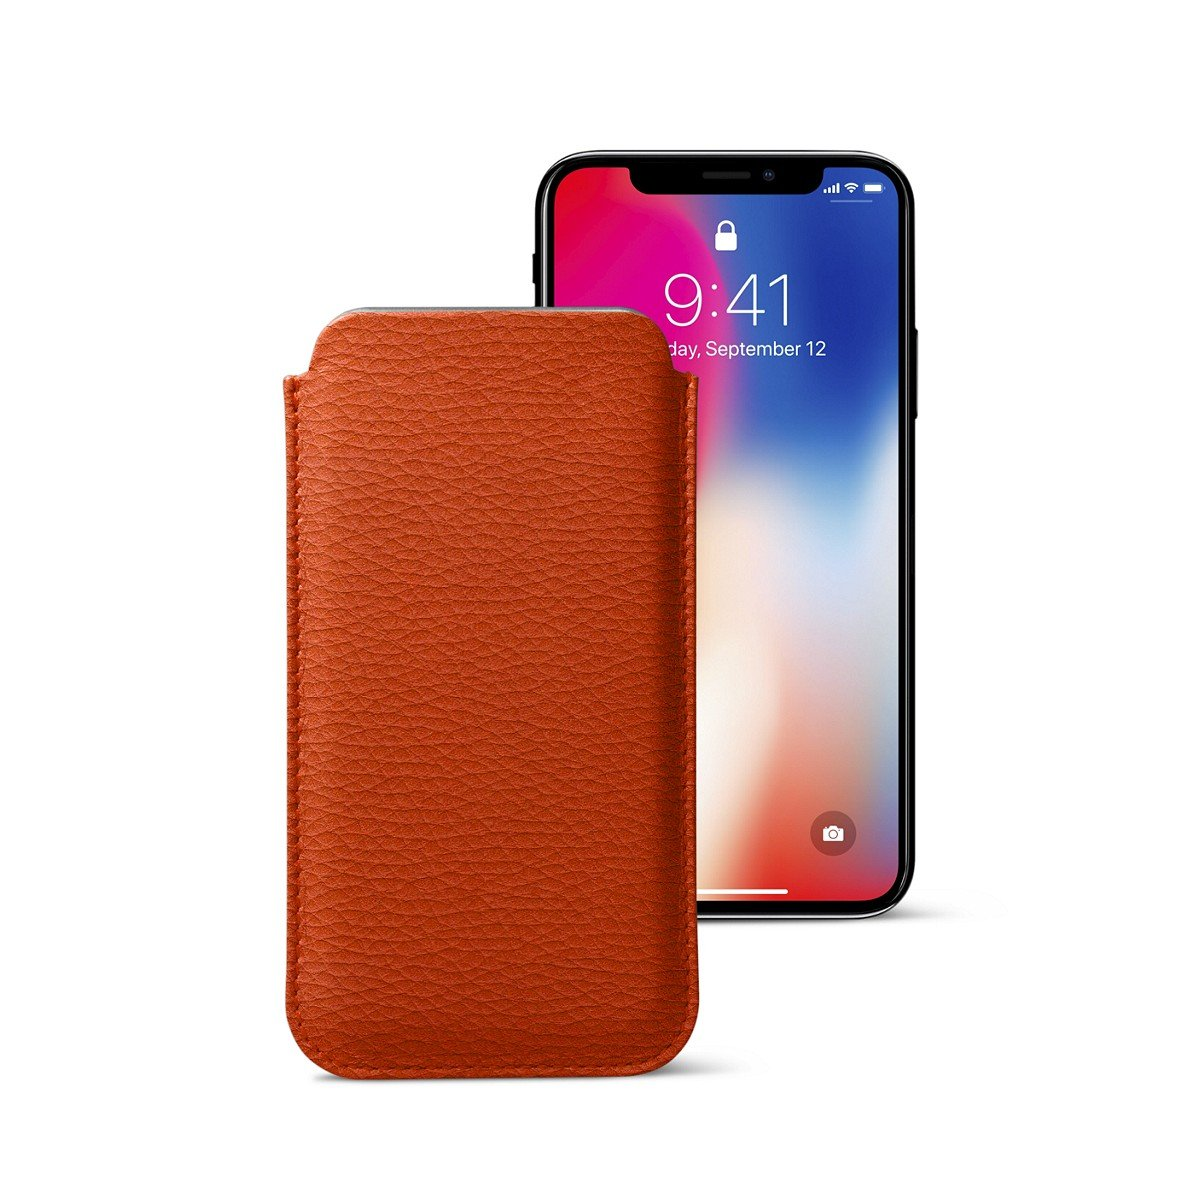 Lucrin - Classic Case for iPhone X - Orange - Granulated Leather by Lucrin (Image #1)